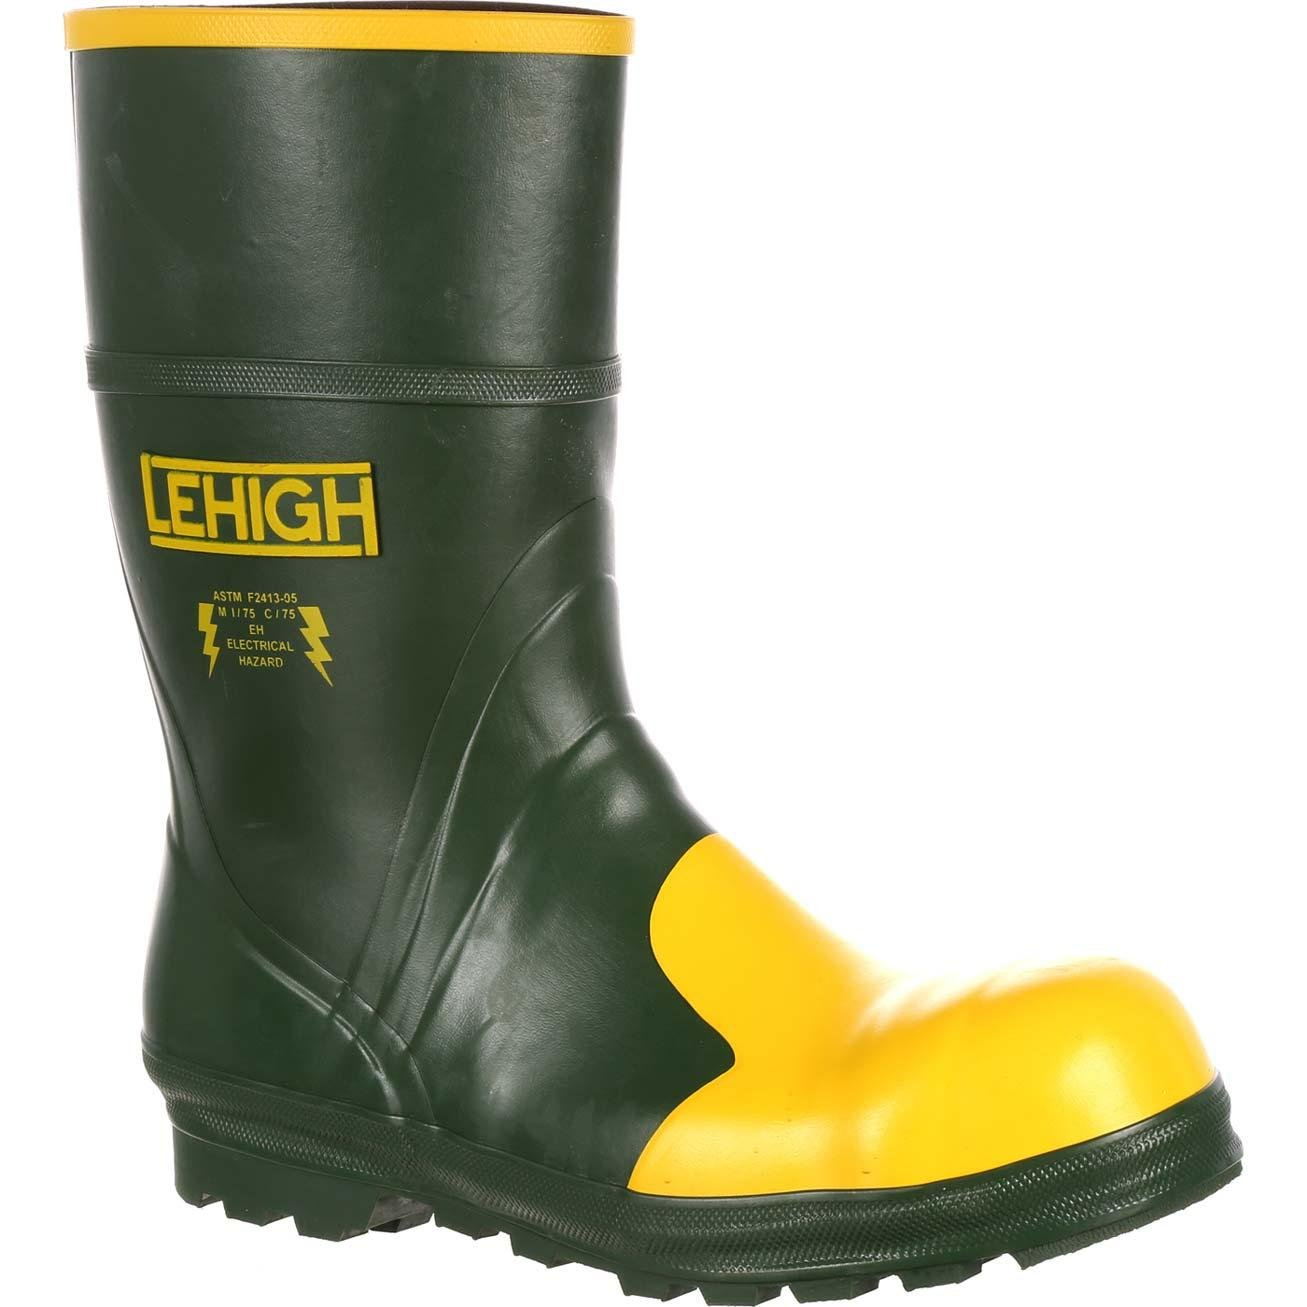 Lehigh Safety Shoes Unisex Steel Toe Rubber Hydroshock Waterproof Dielectric Work Boot Green by Lehigh